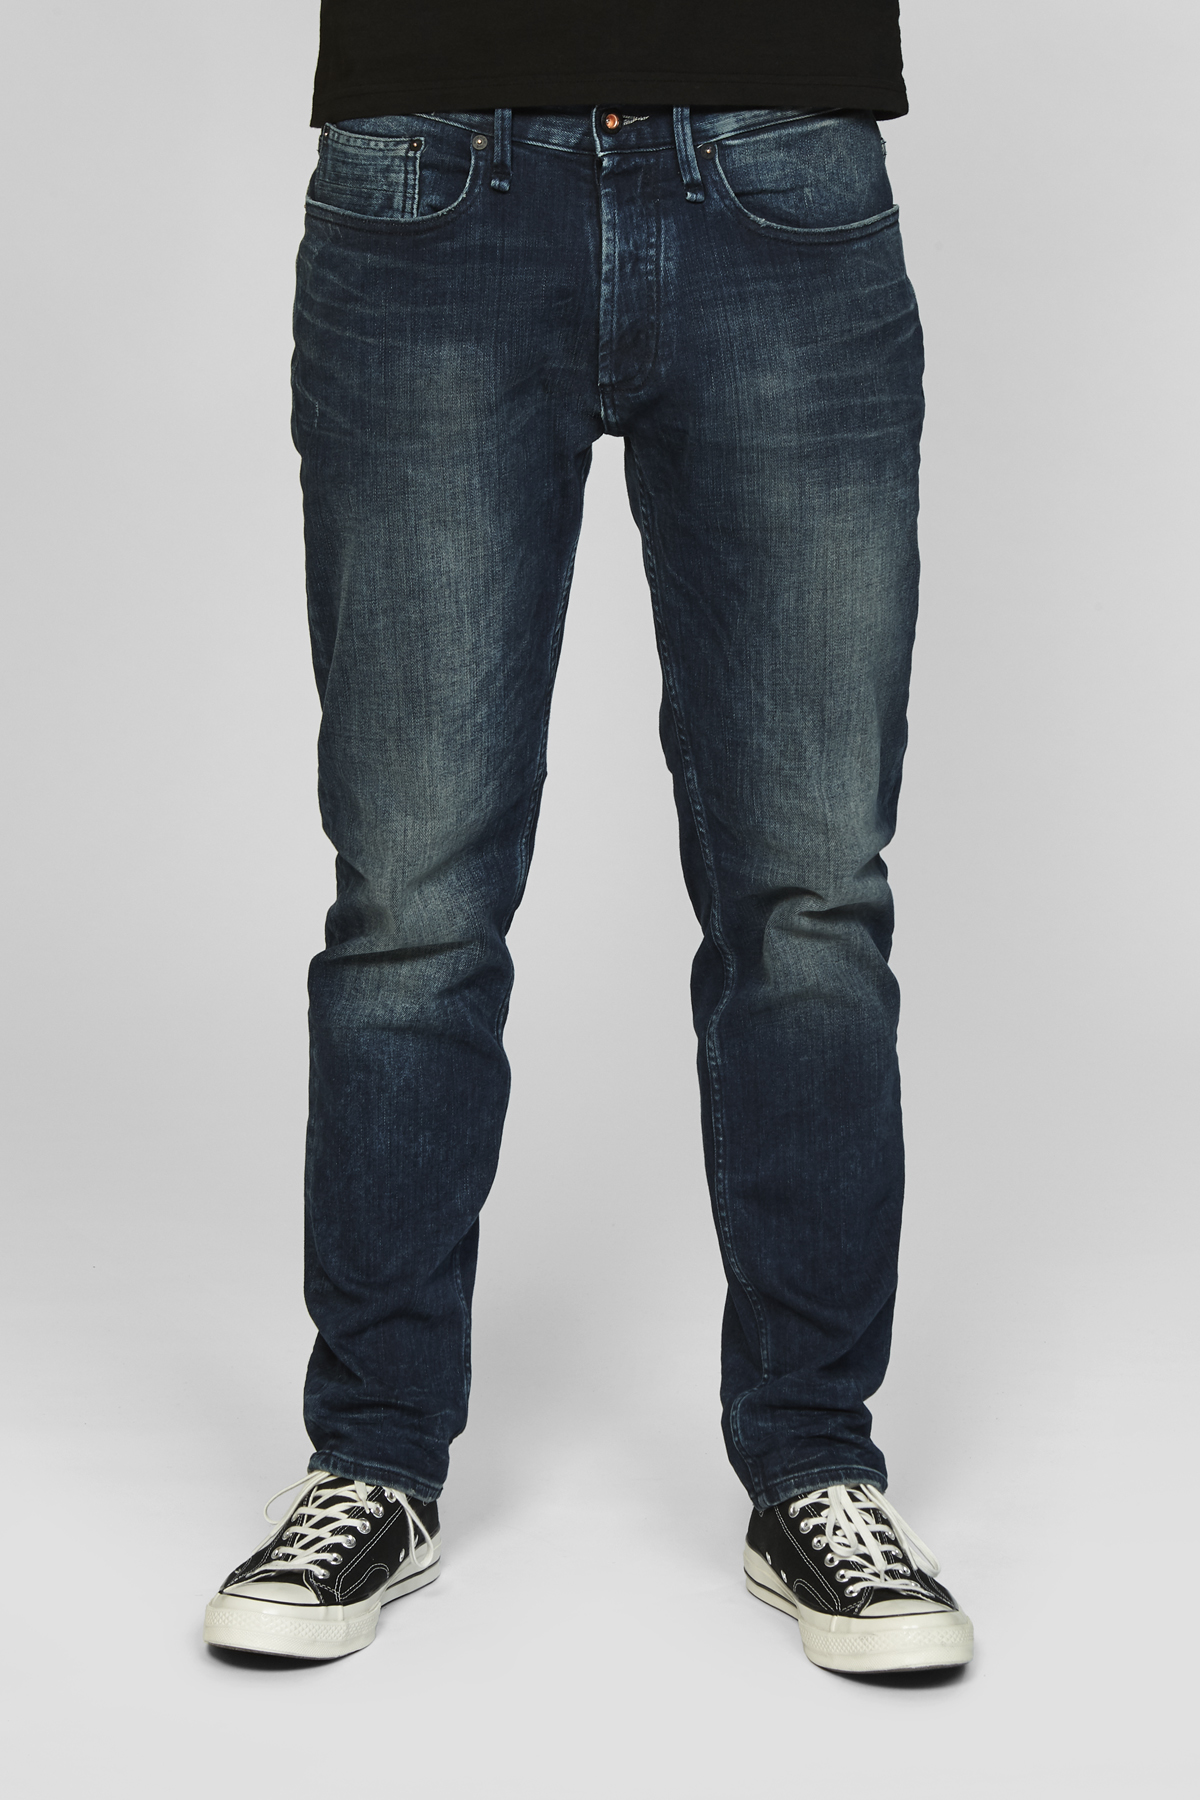 Forge Relaxed Fit Jeans SFD